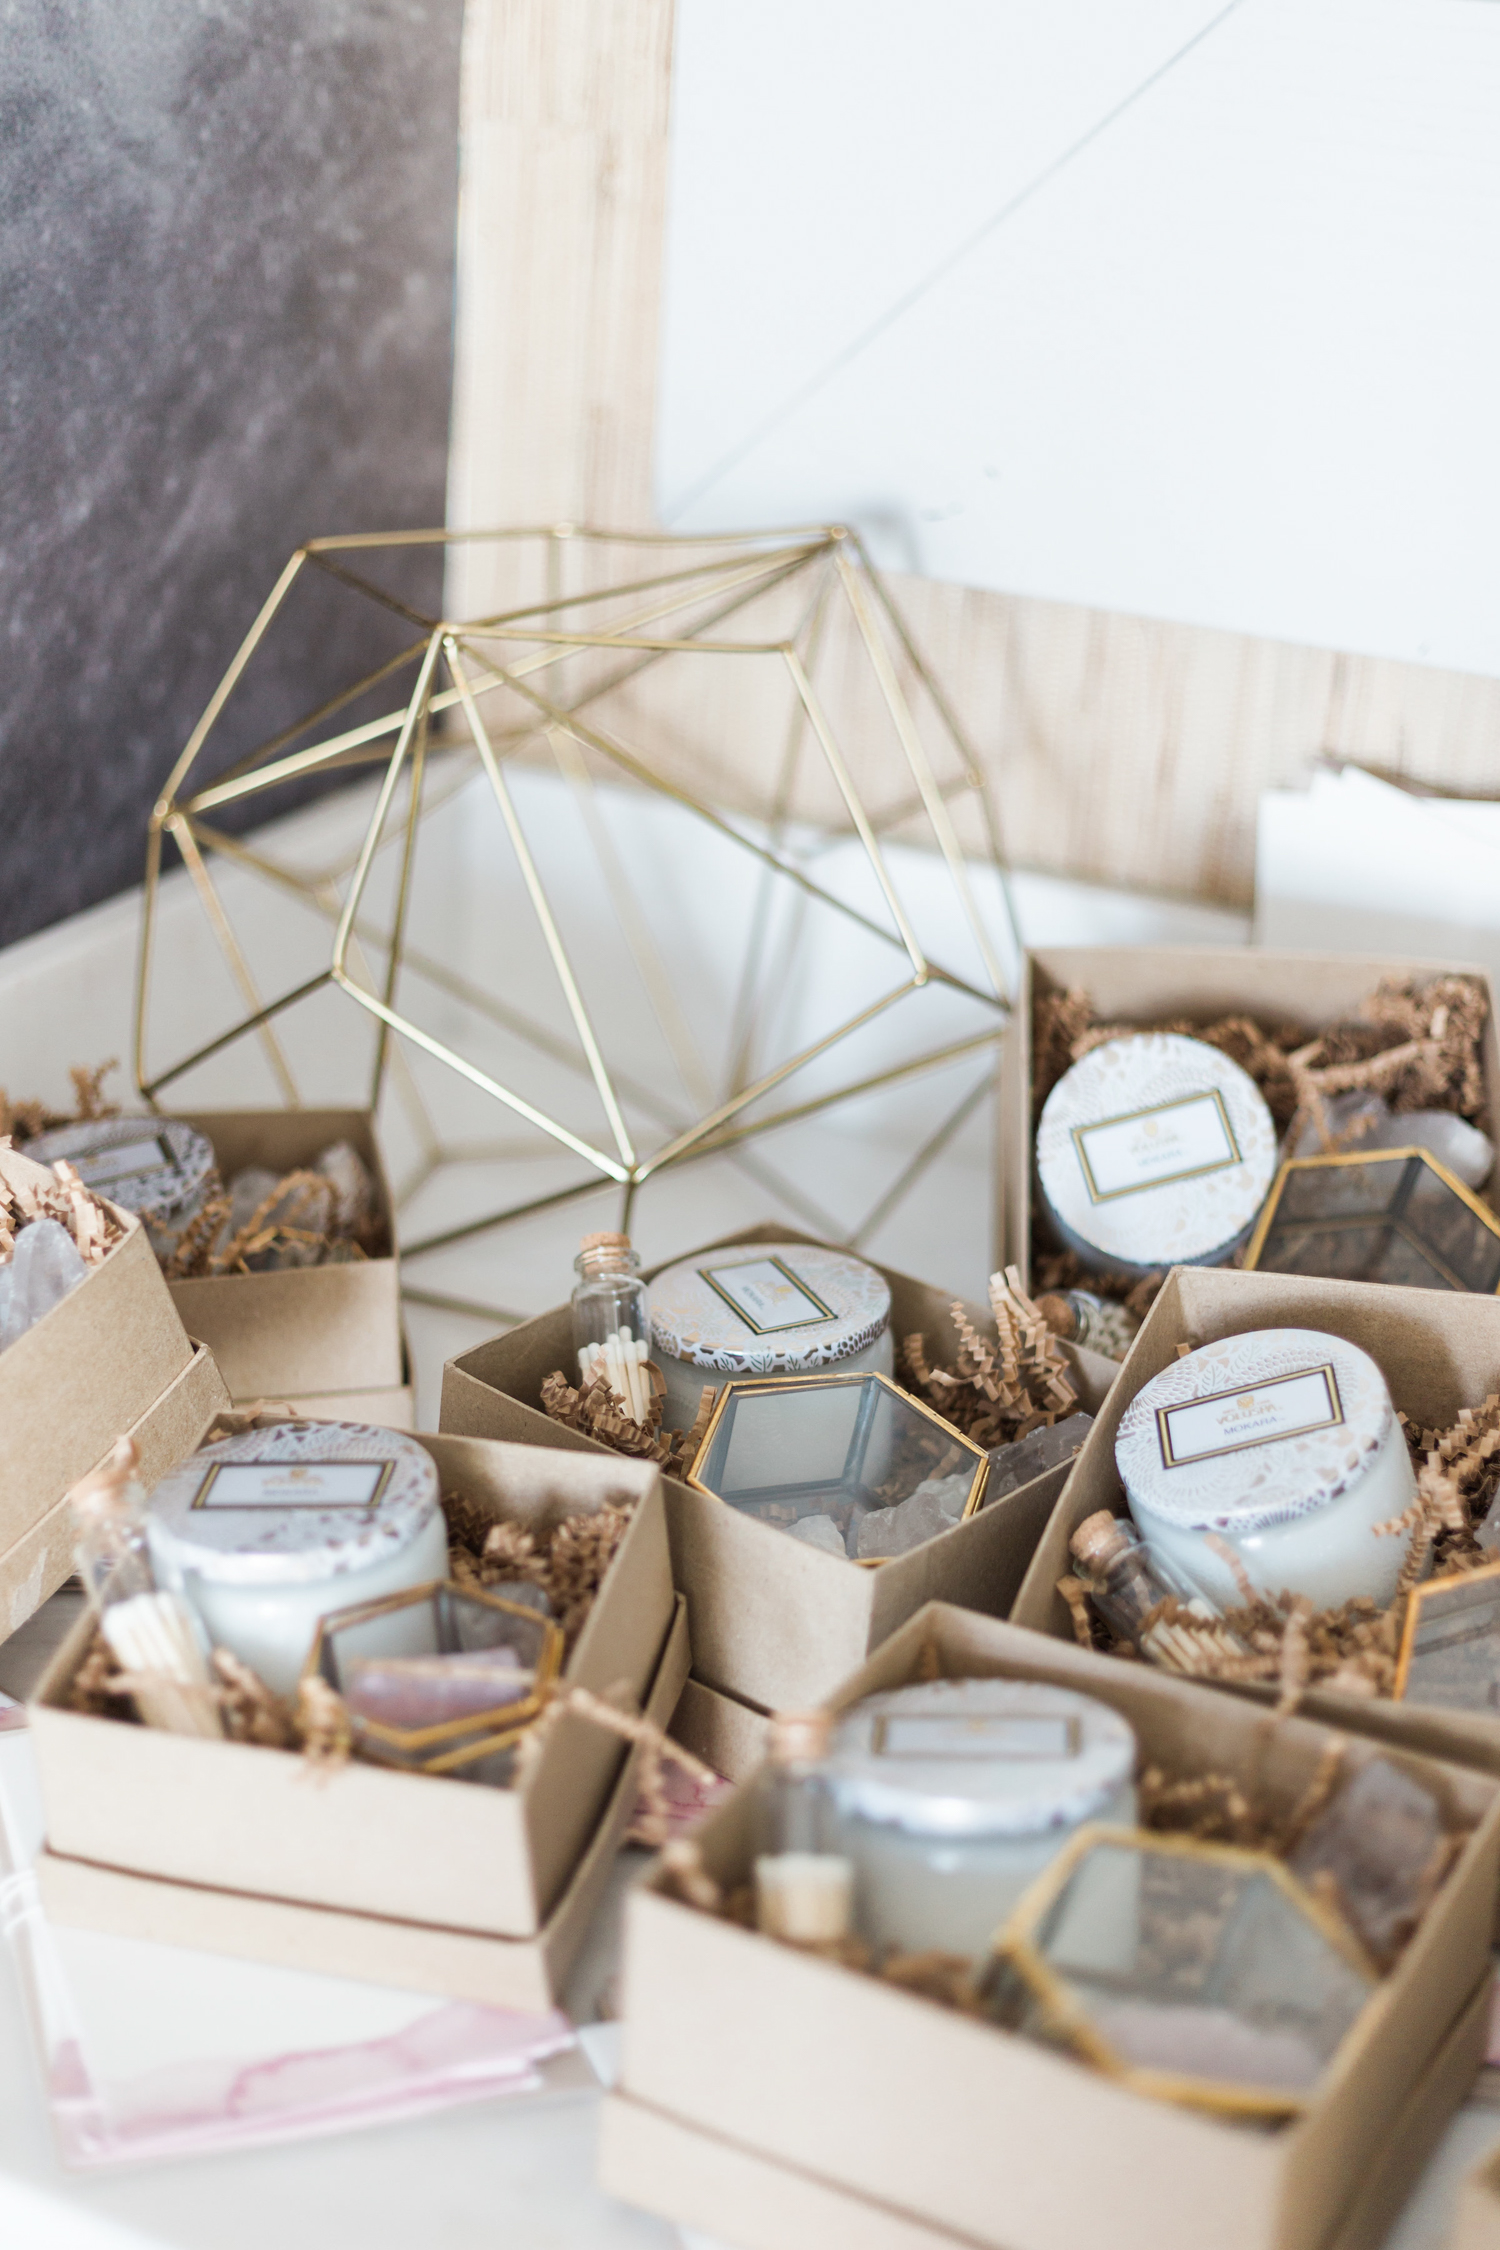 Party favors included Voluspa candles, mini match bottles, brass jewelry boxes and crystals | A Fabulous Fete